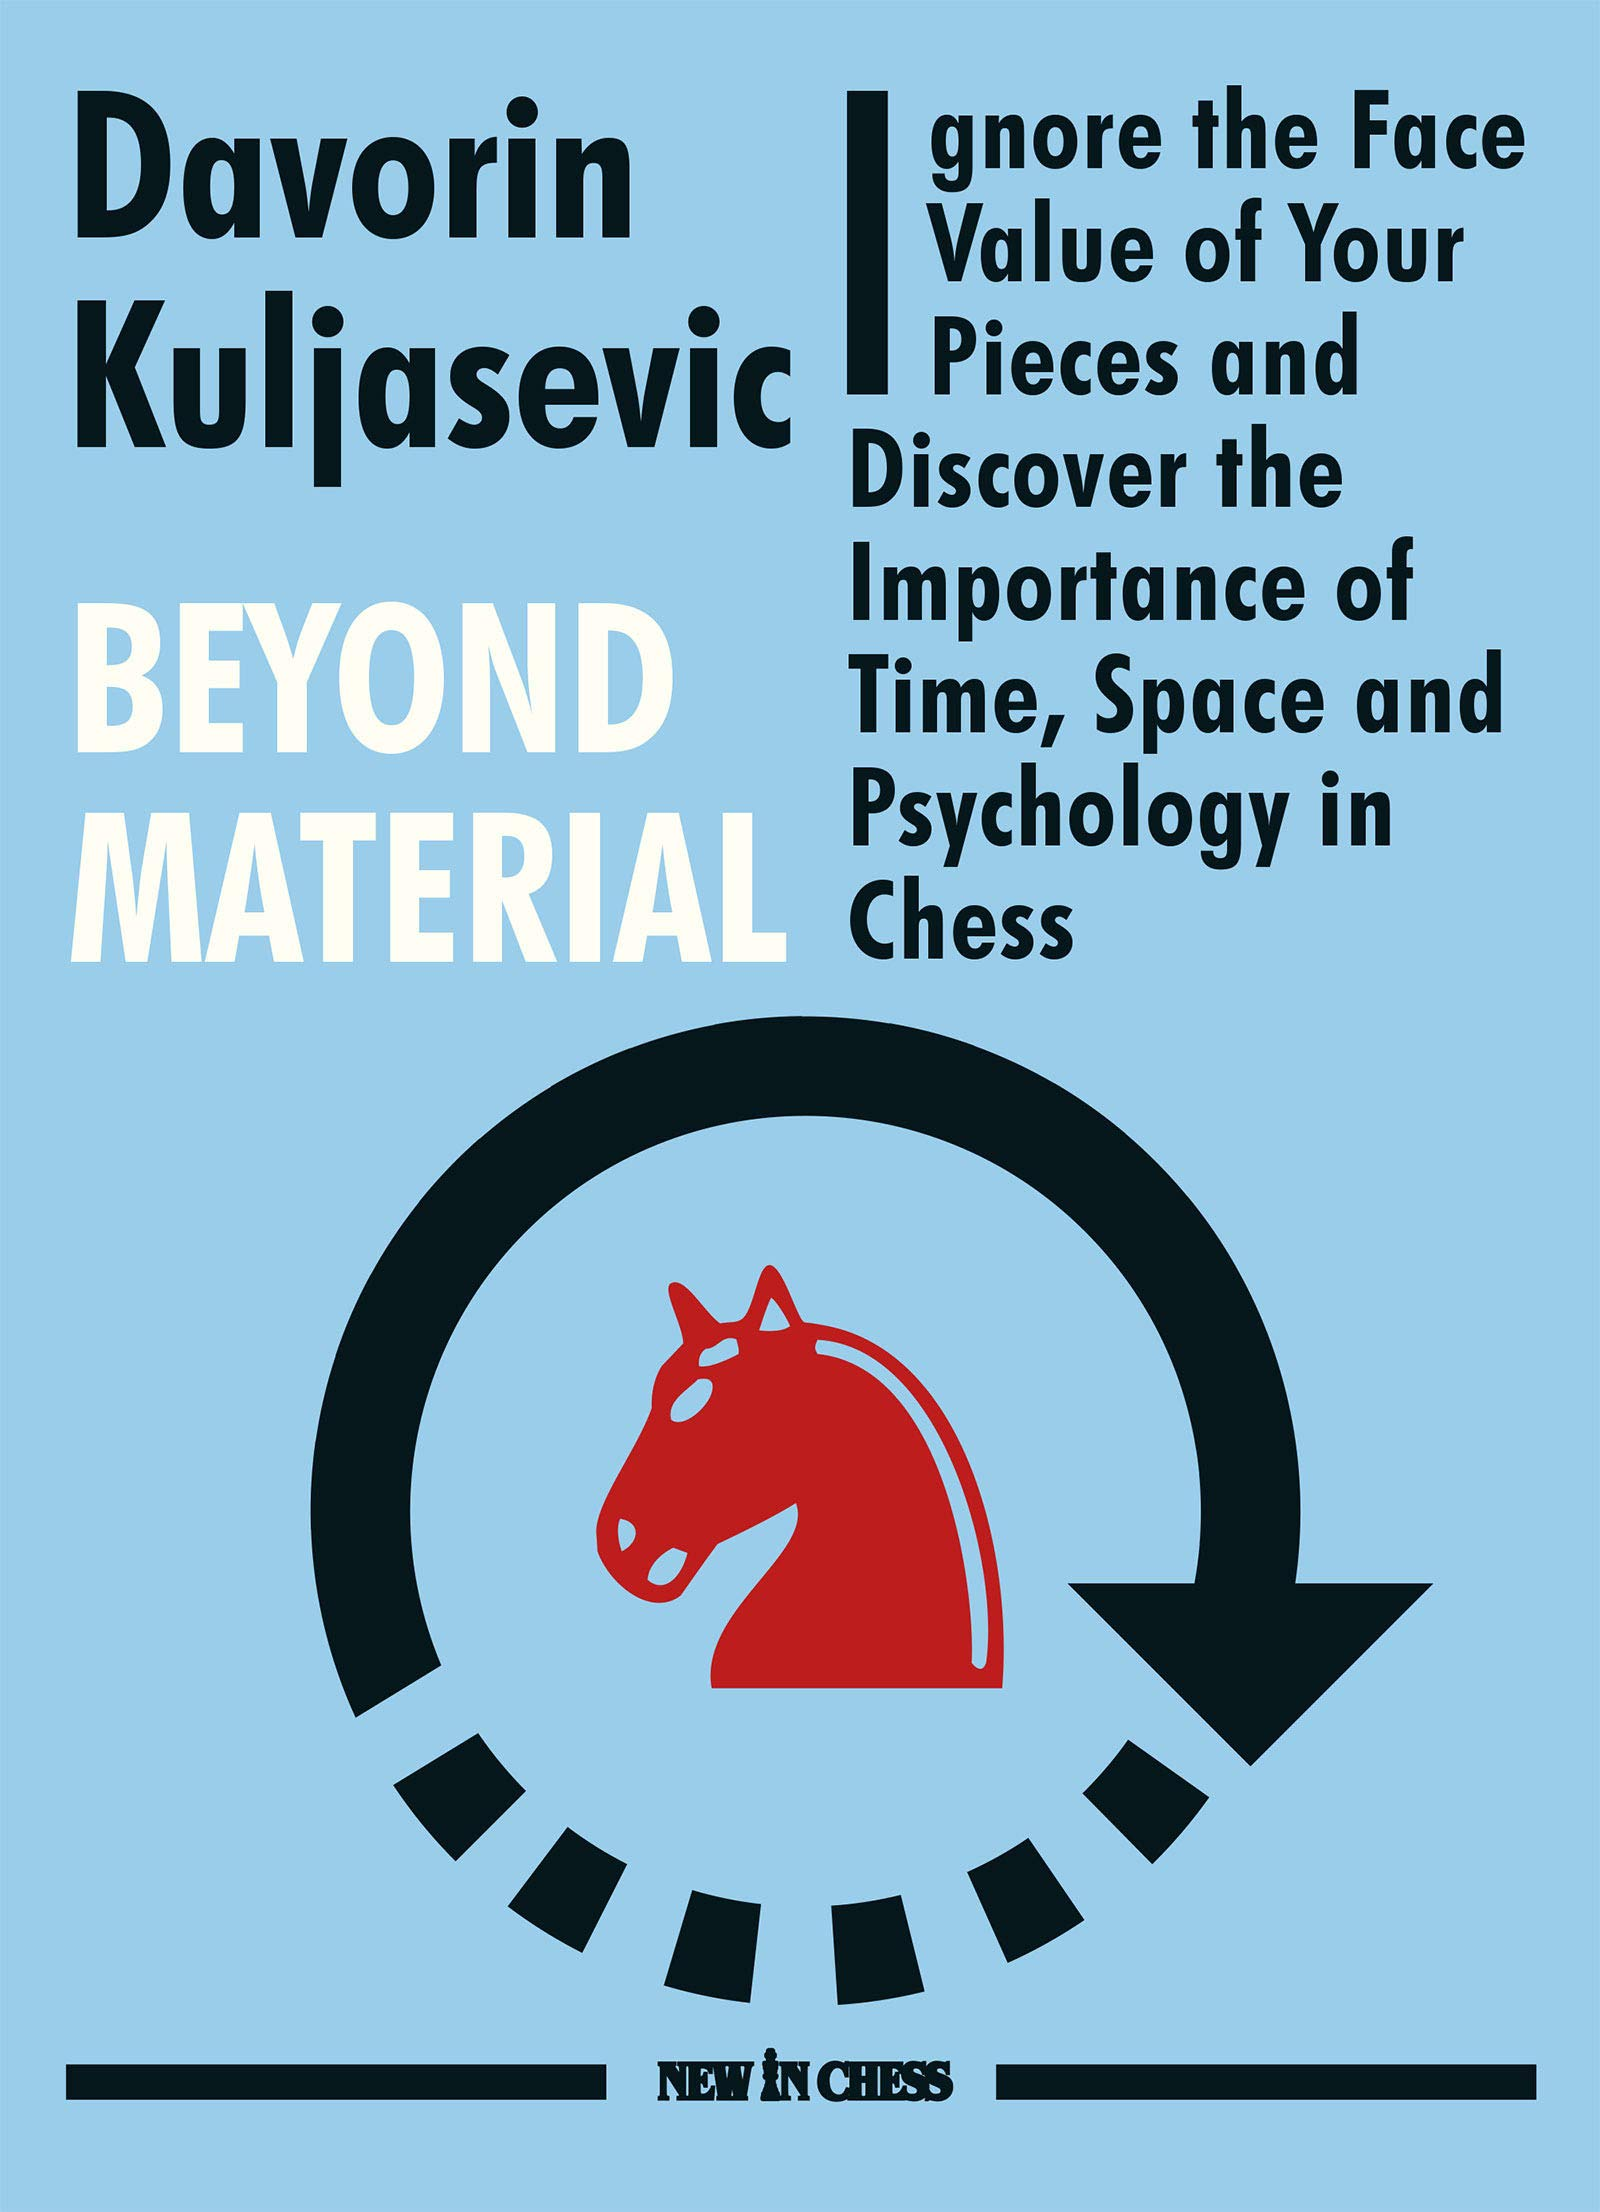 Beyond Material: Ignore the Face Value of Your Pieces and Discover the Importance of Time, Space and Psychology in Chess, Davorin Kuljasevic, New in Chess, 2021, 978-9056918606